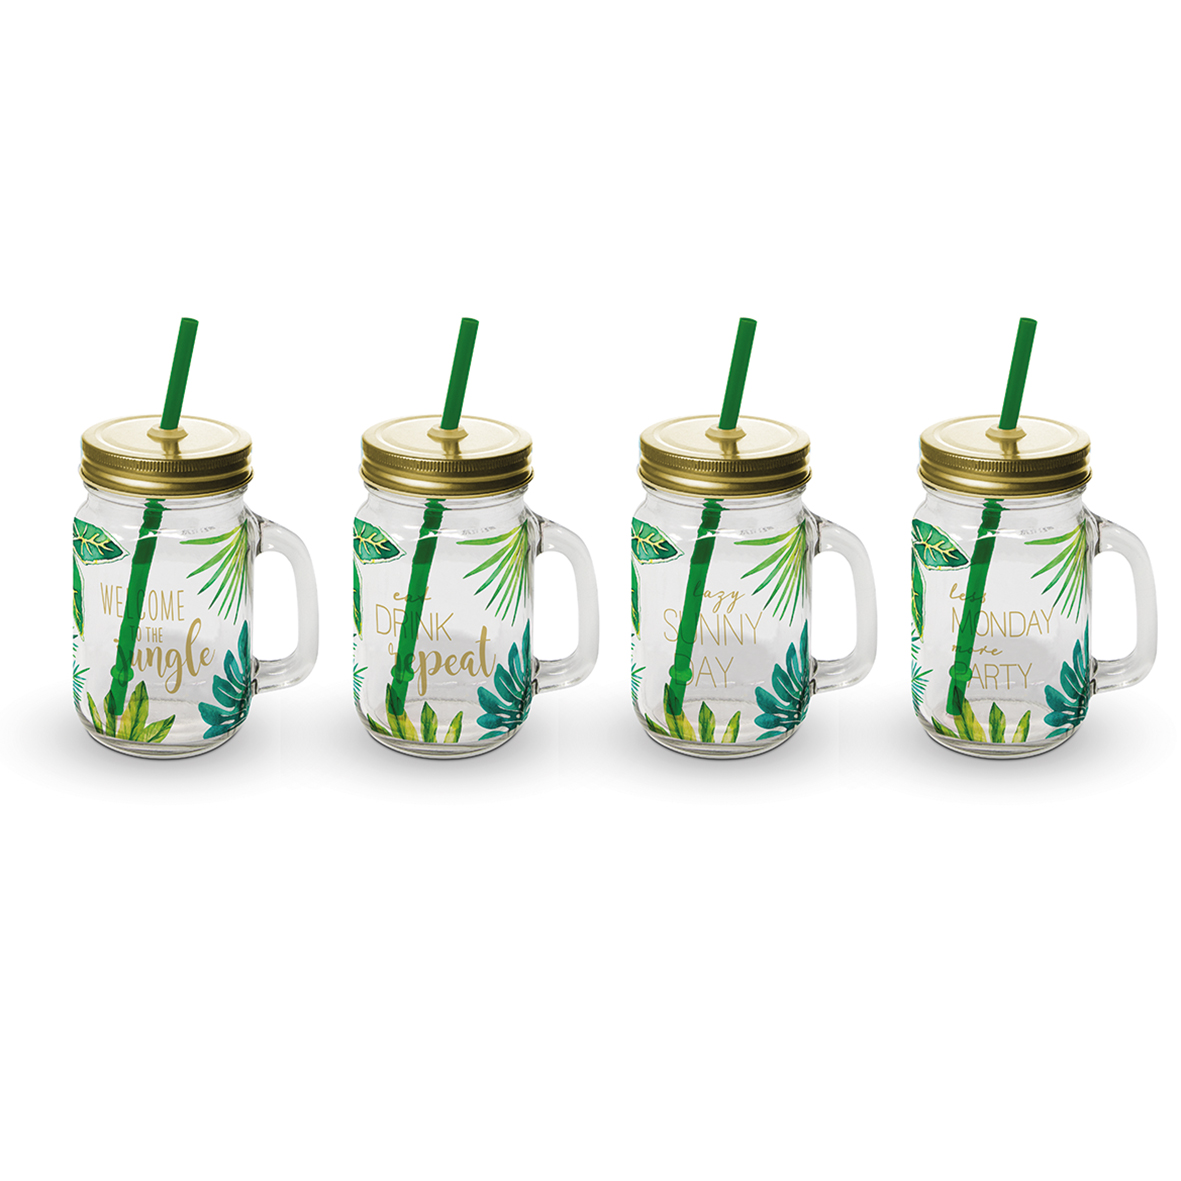 Party Tumbler Glass Set of 4 Jungle gold